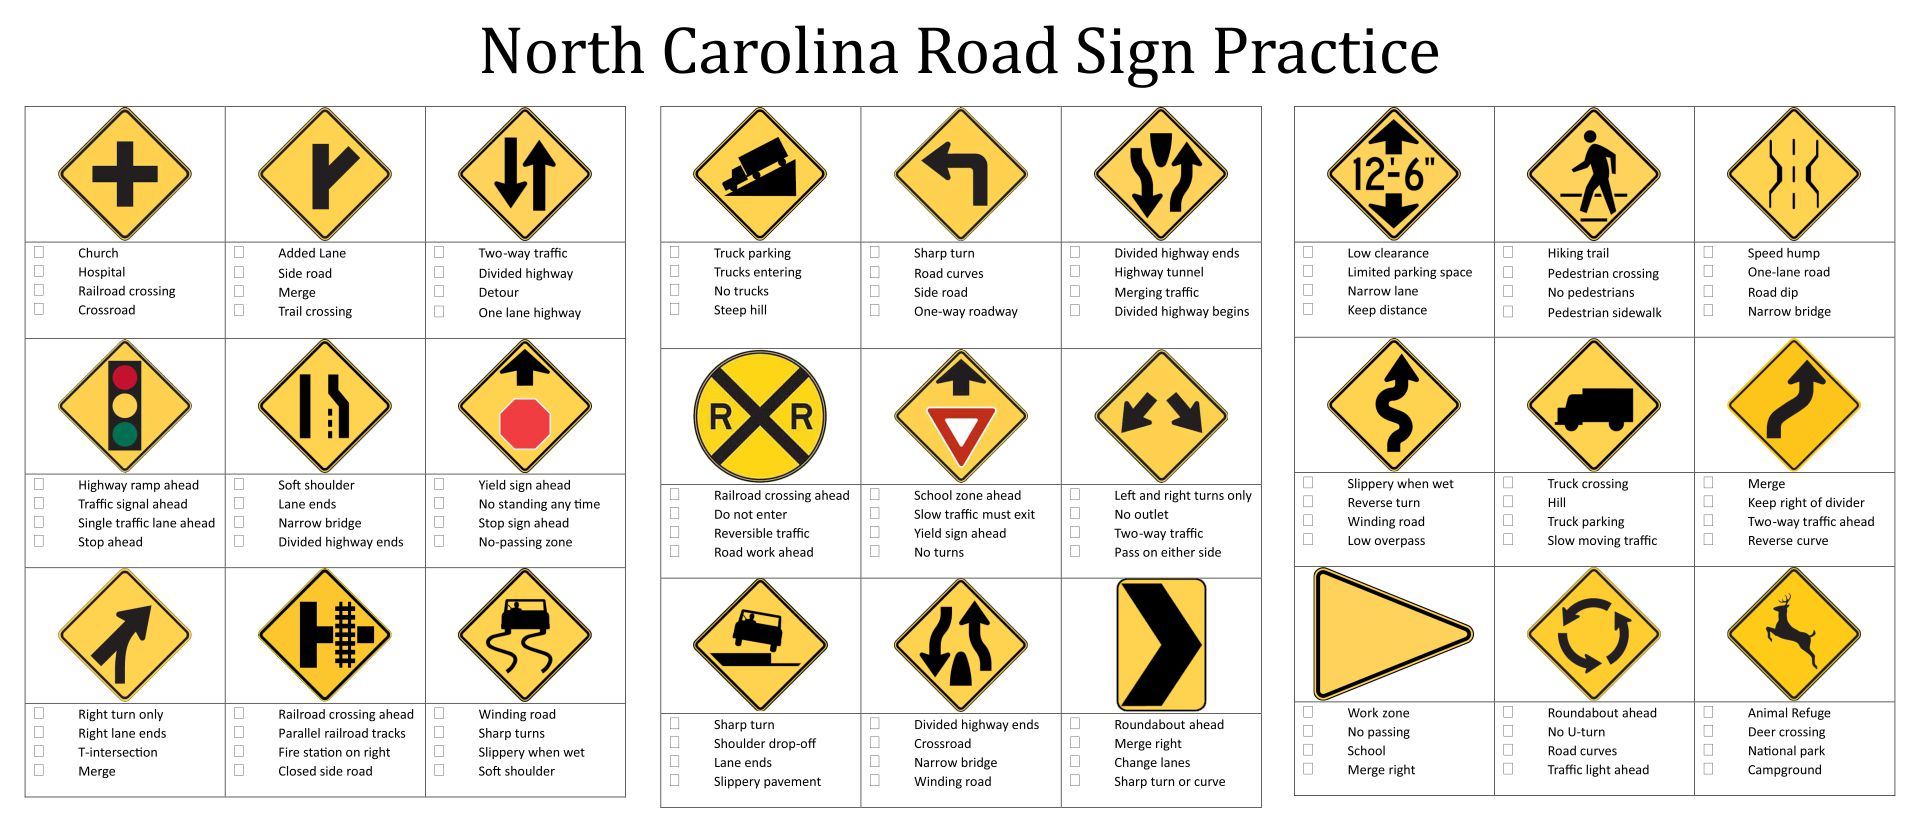 North Carolina Road Sign Practice Test